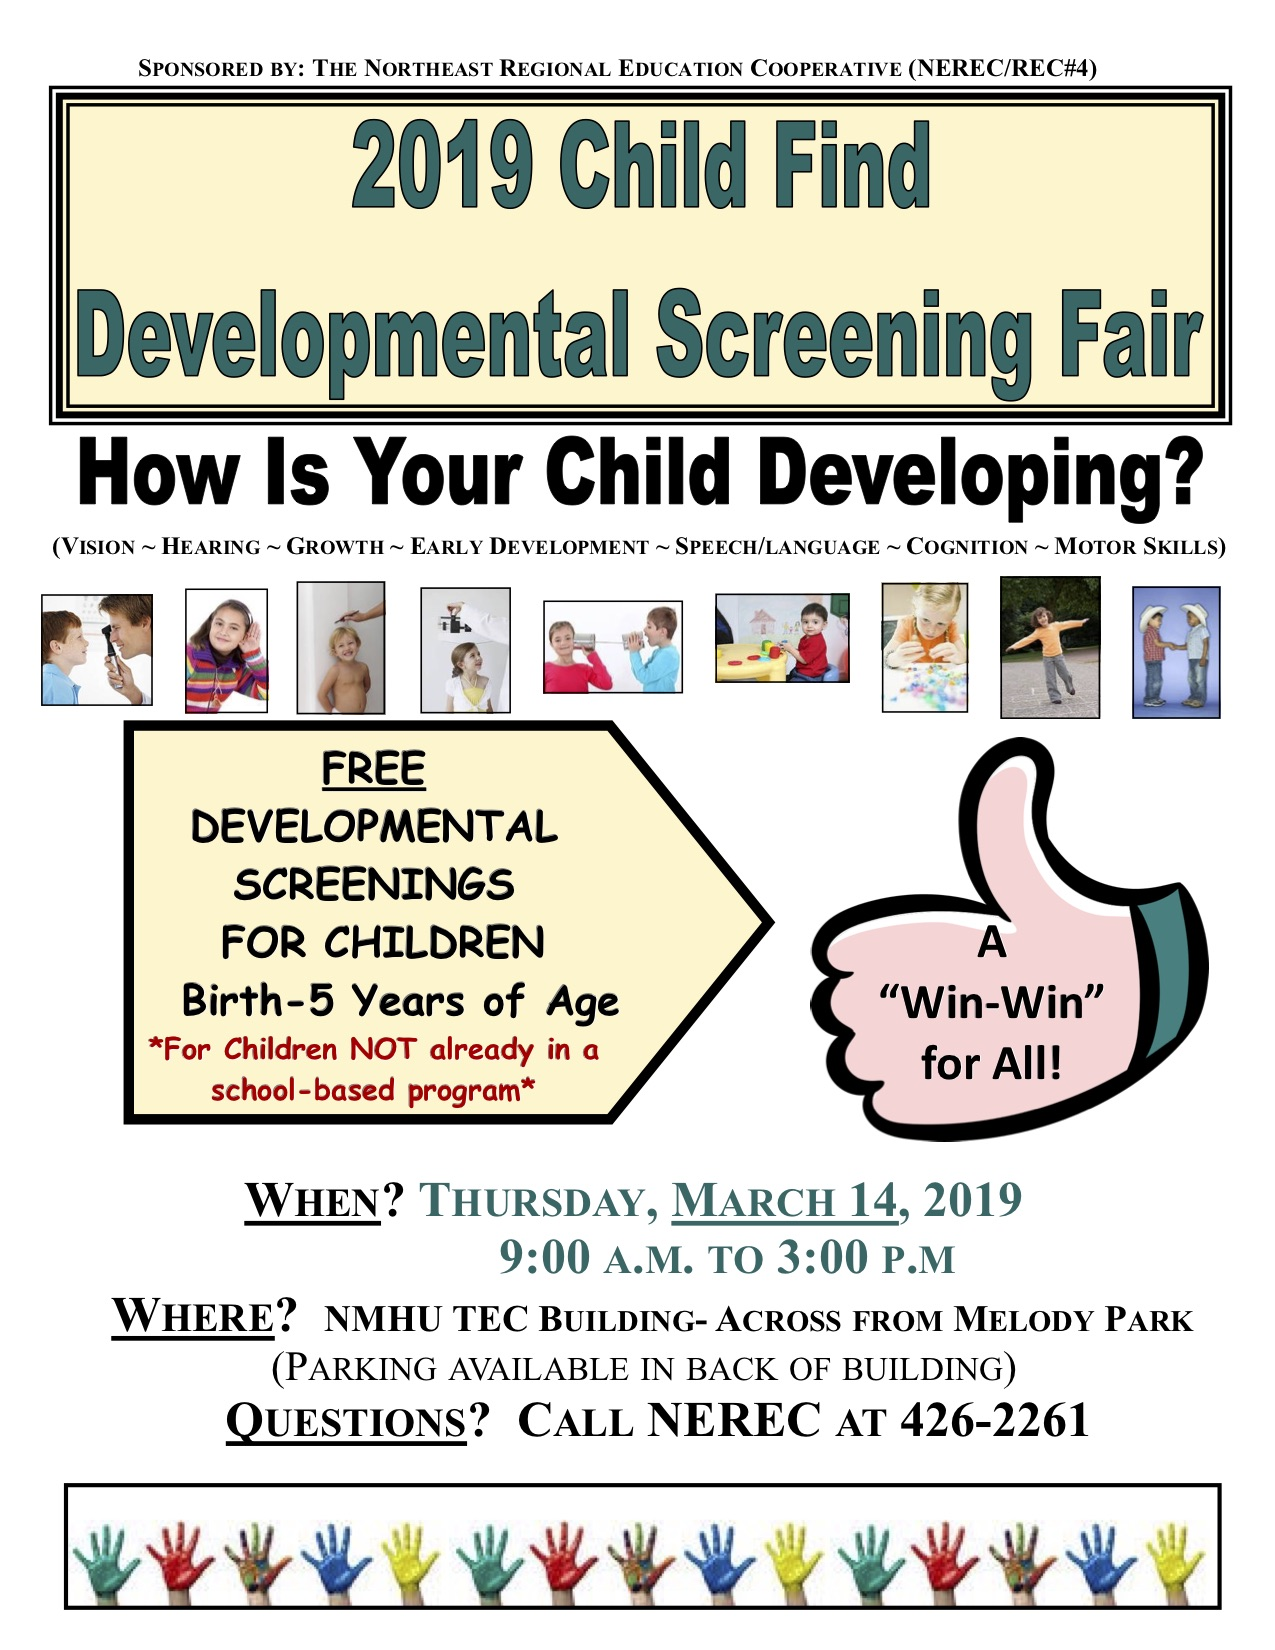 Child Find Developmental Screening Fair Flyer